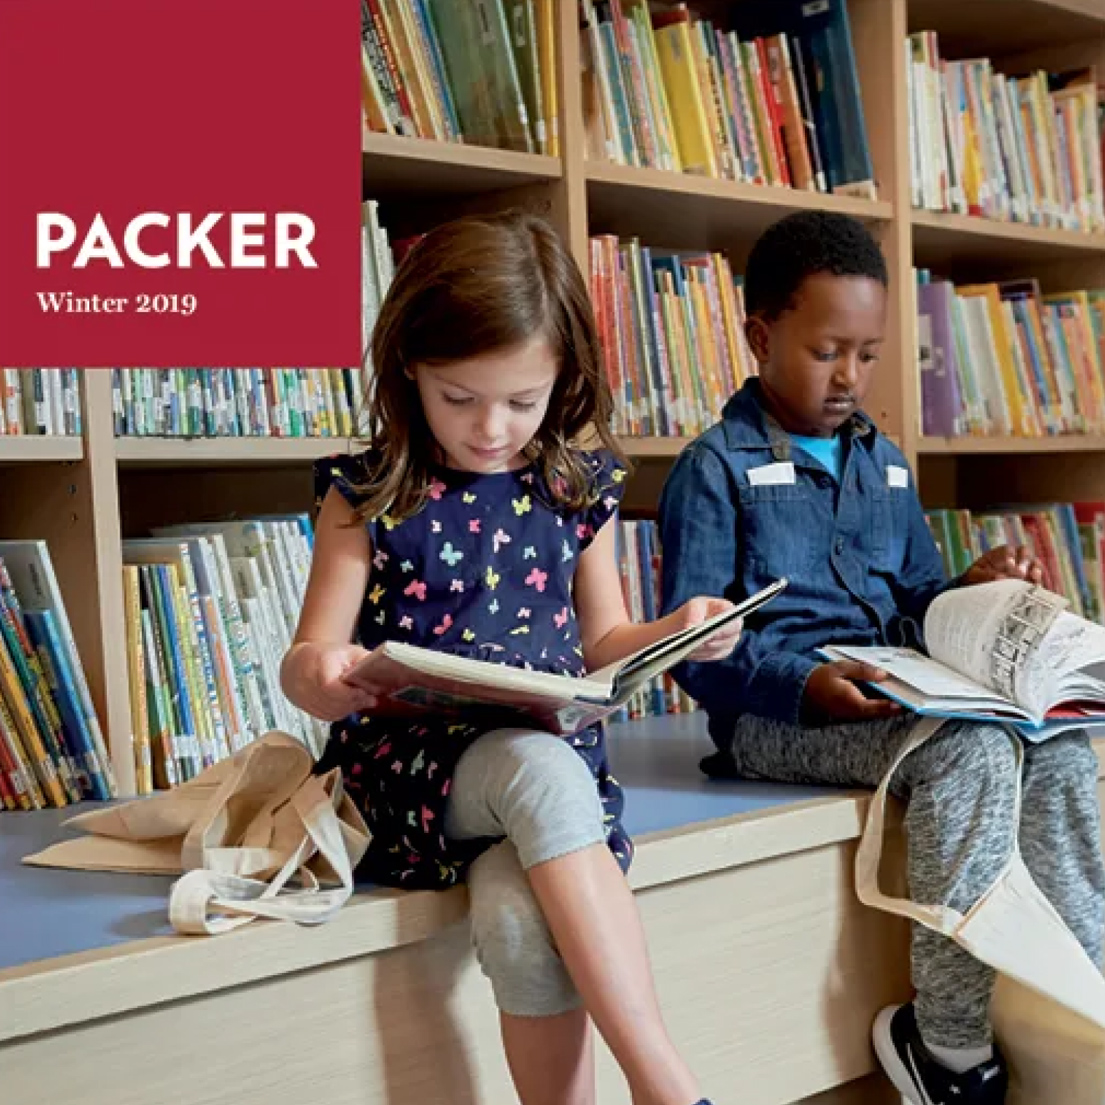 2019_Introducing-the-Packer-Early-Learning-Center-_-Magazine-Details.jpg